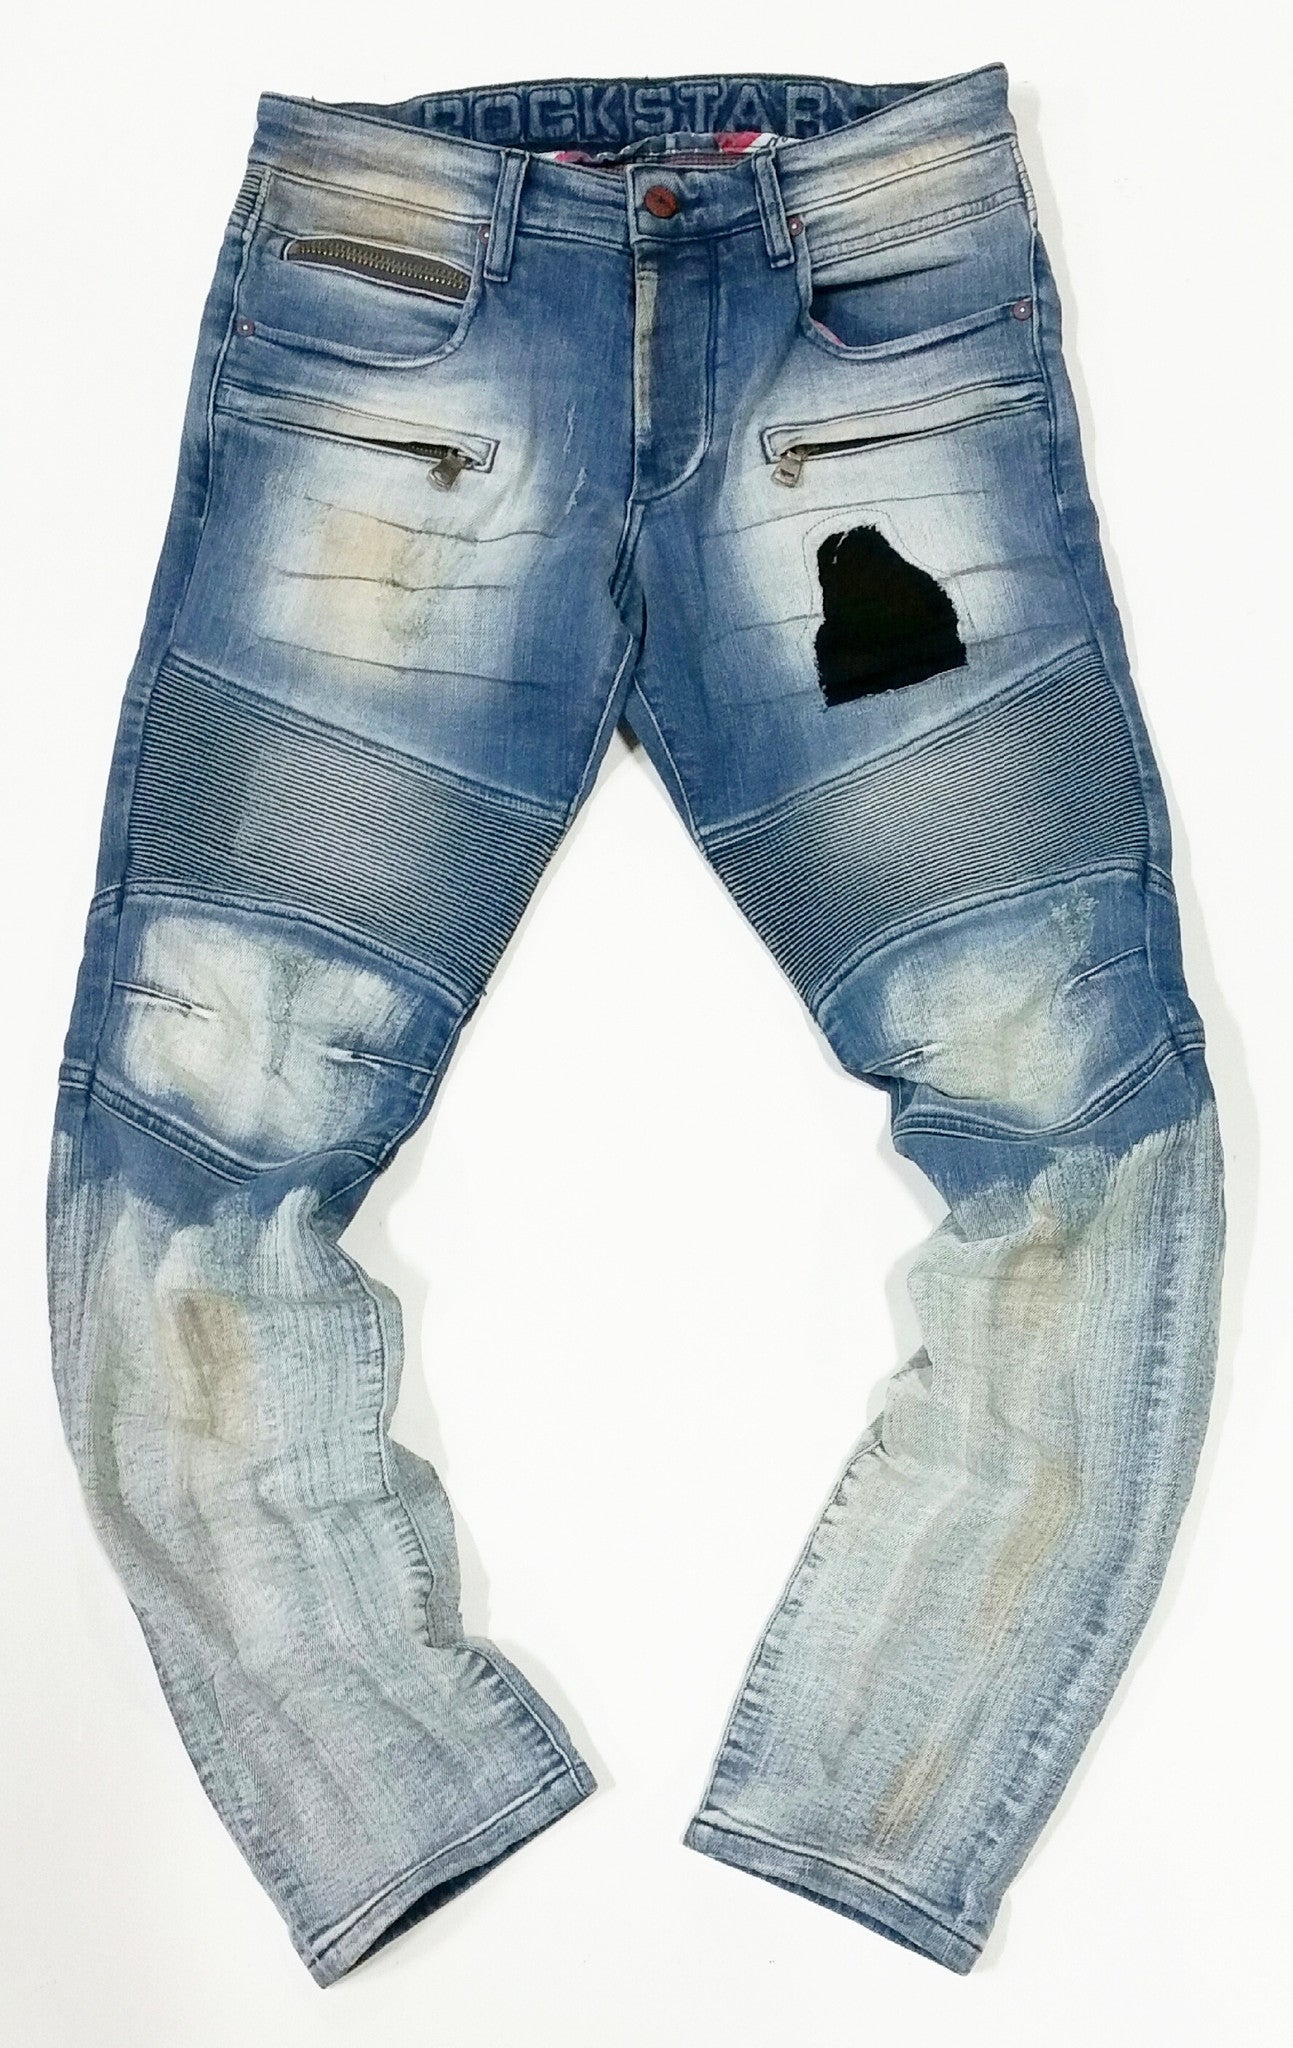 Greg Motorcycle Jeans